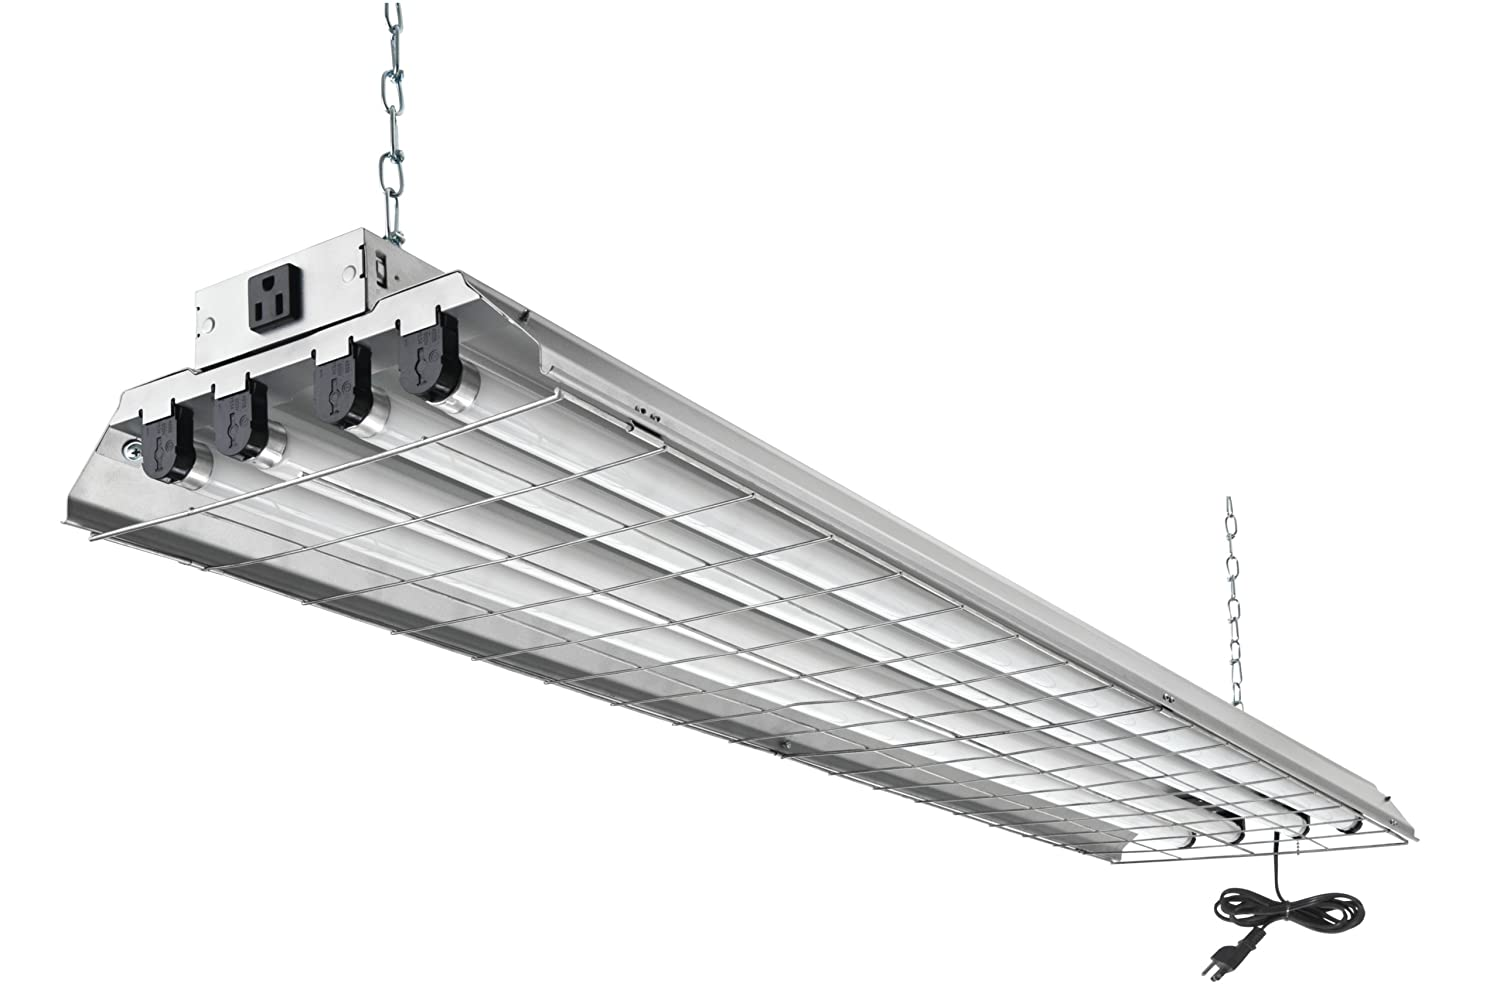 Lithonia Lighting 1284GRD RE 4-Light Heavy Duty Shoplight - Ceiling Pendant Fixtures - Amazon.com  sc 1 st  Amazon.com : flourecent lighting - www.canuckmediamonitor.org